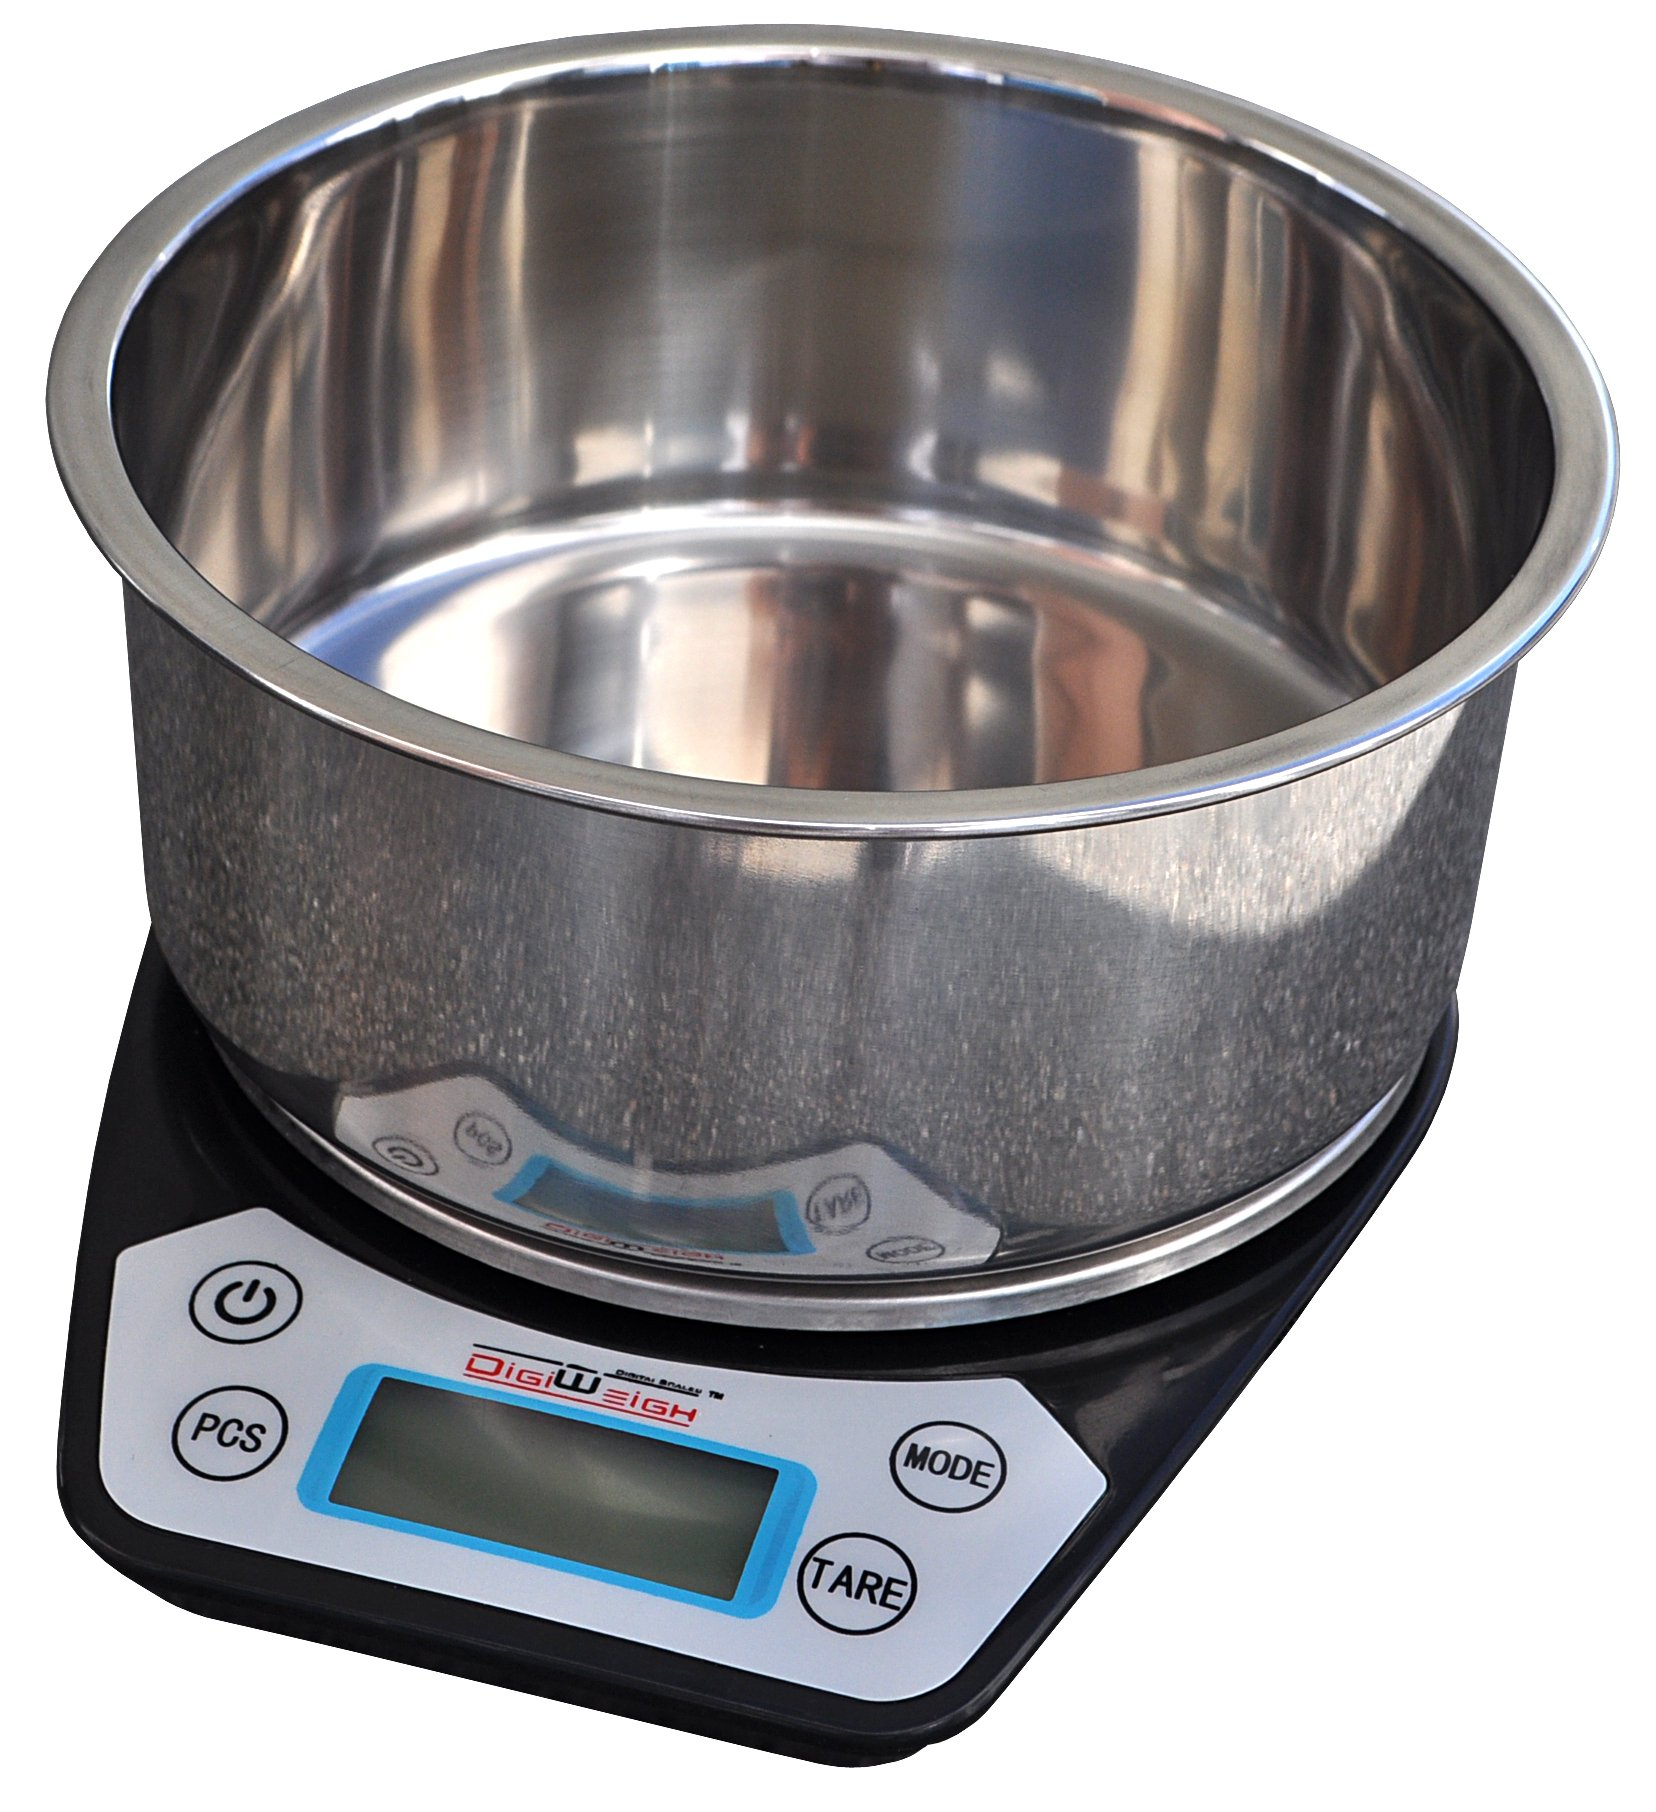 DIGIWEIGH Stainless Bowl with 0.01G Accuracy Weighing Scale (DW-86)